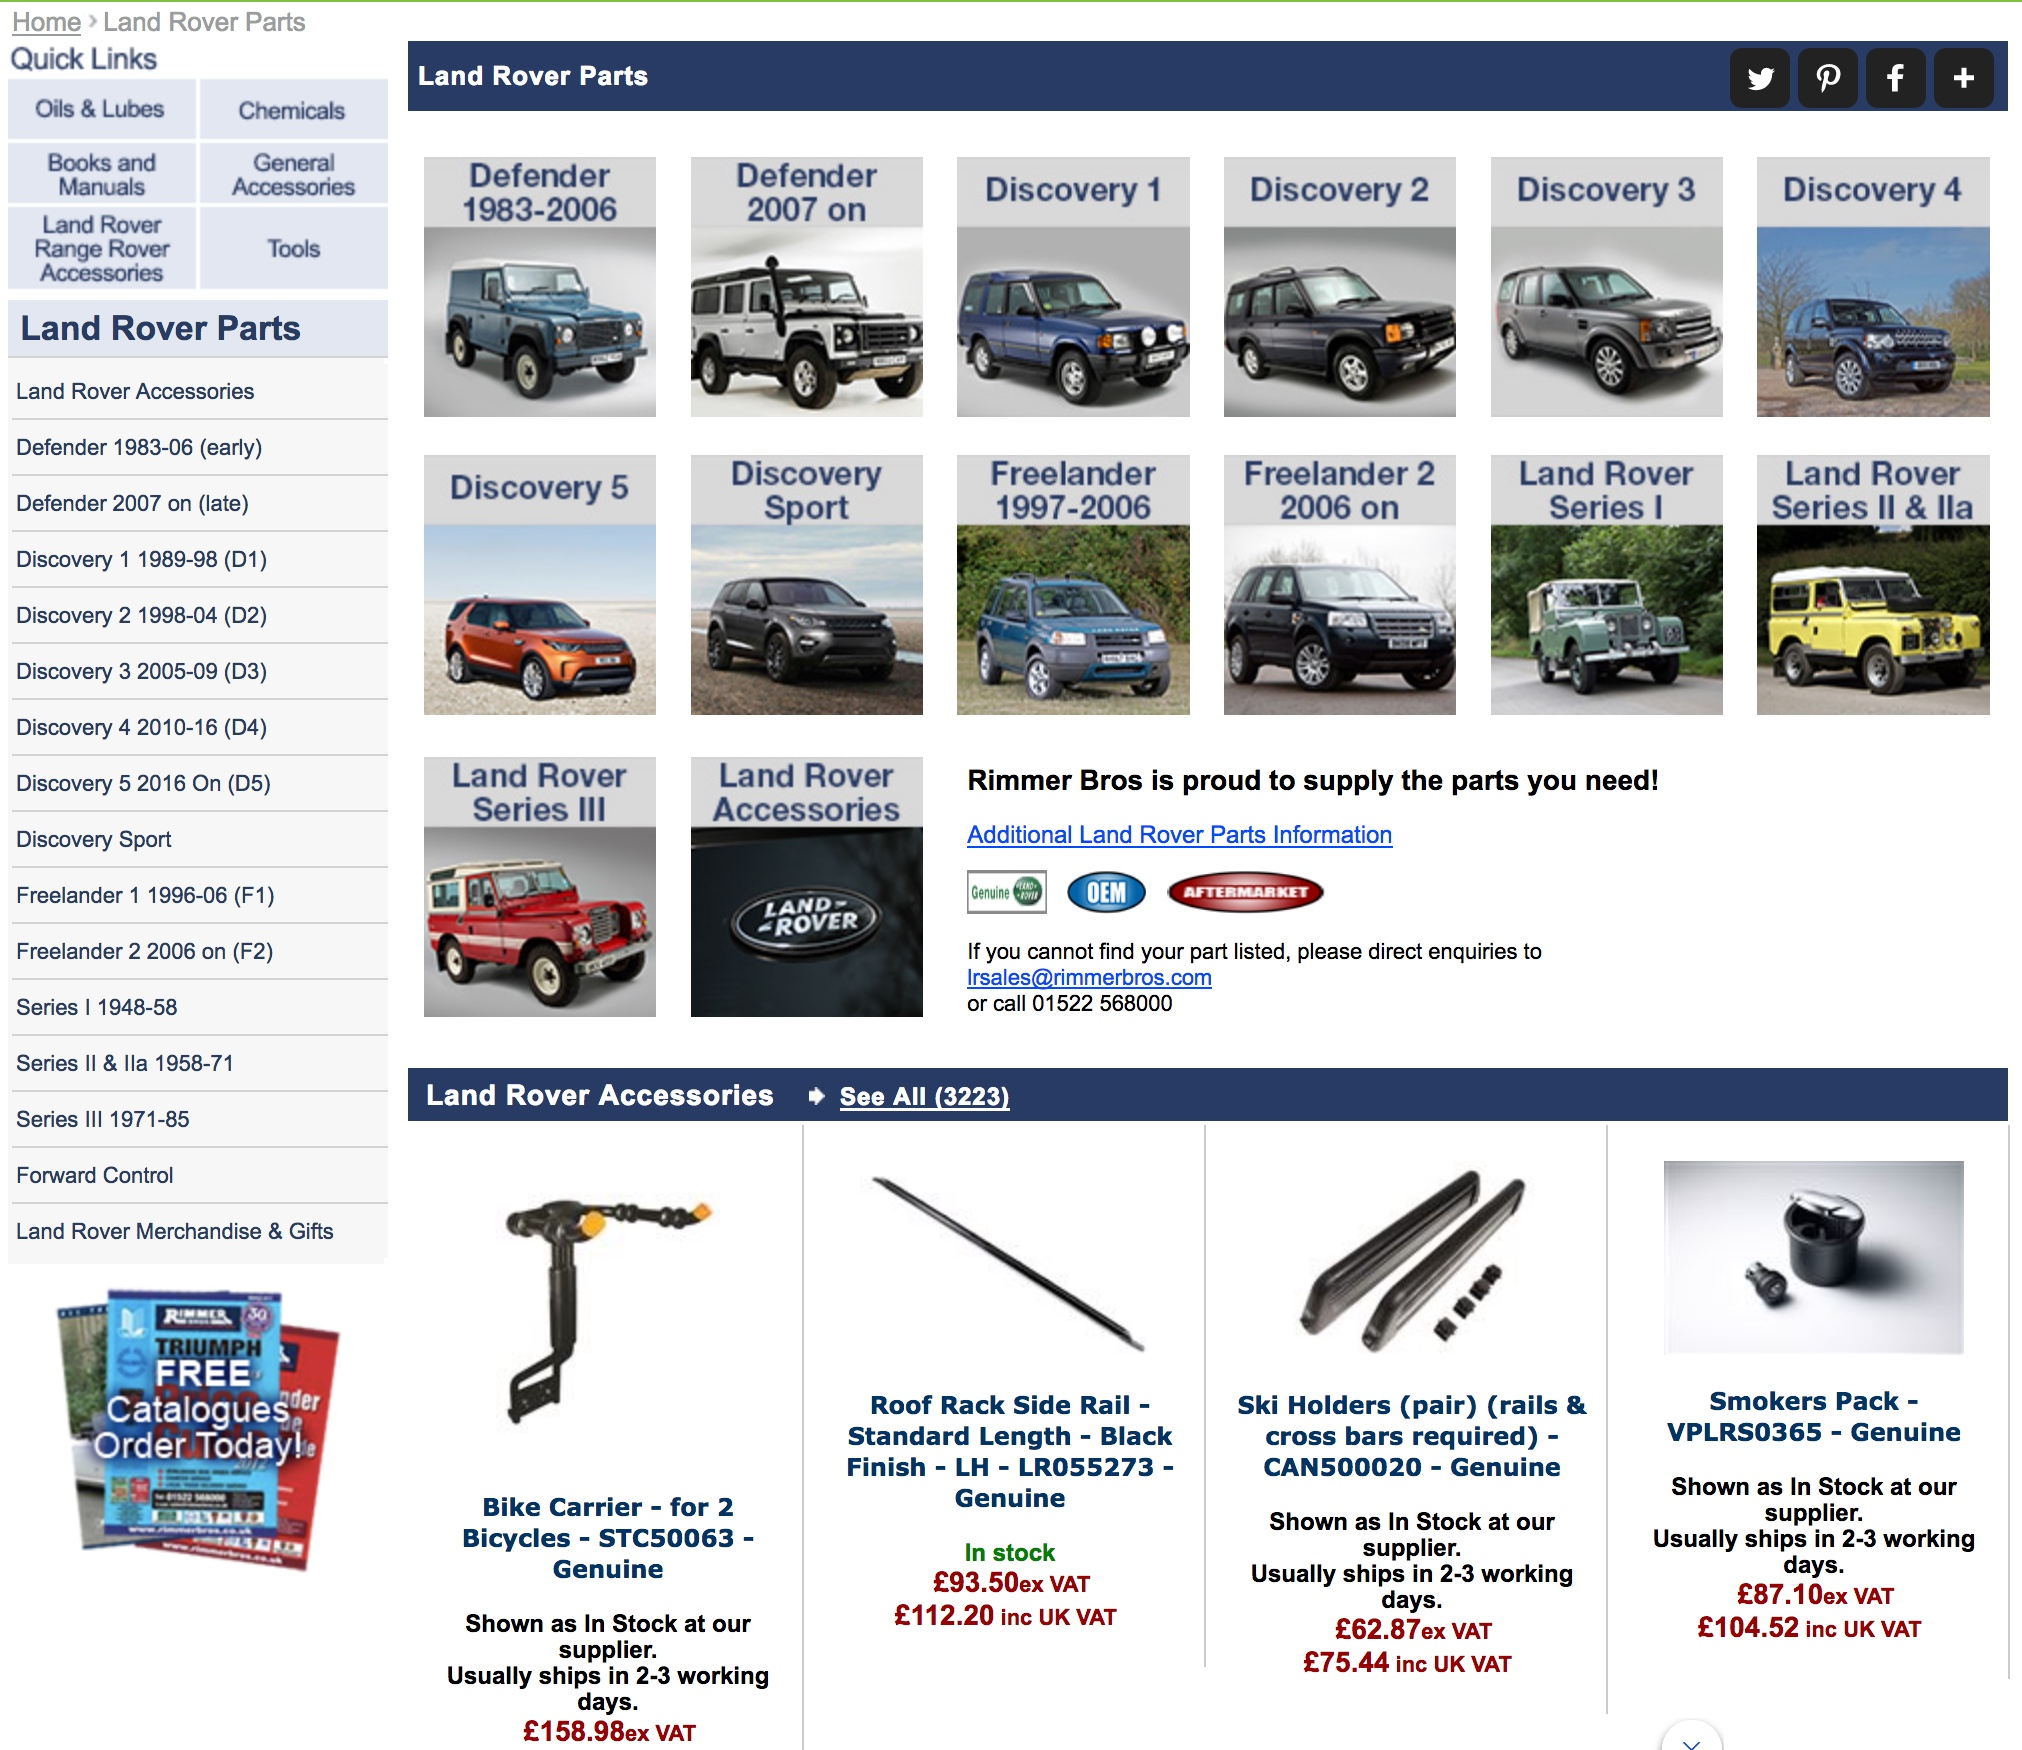 Rimmer Bros Land Rover Parts Specialists